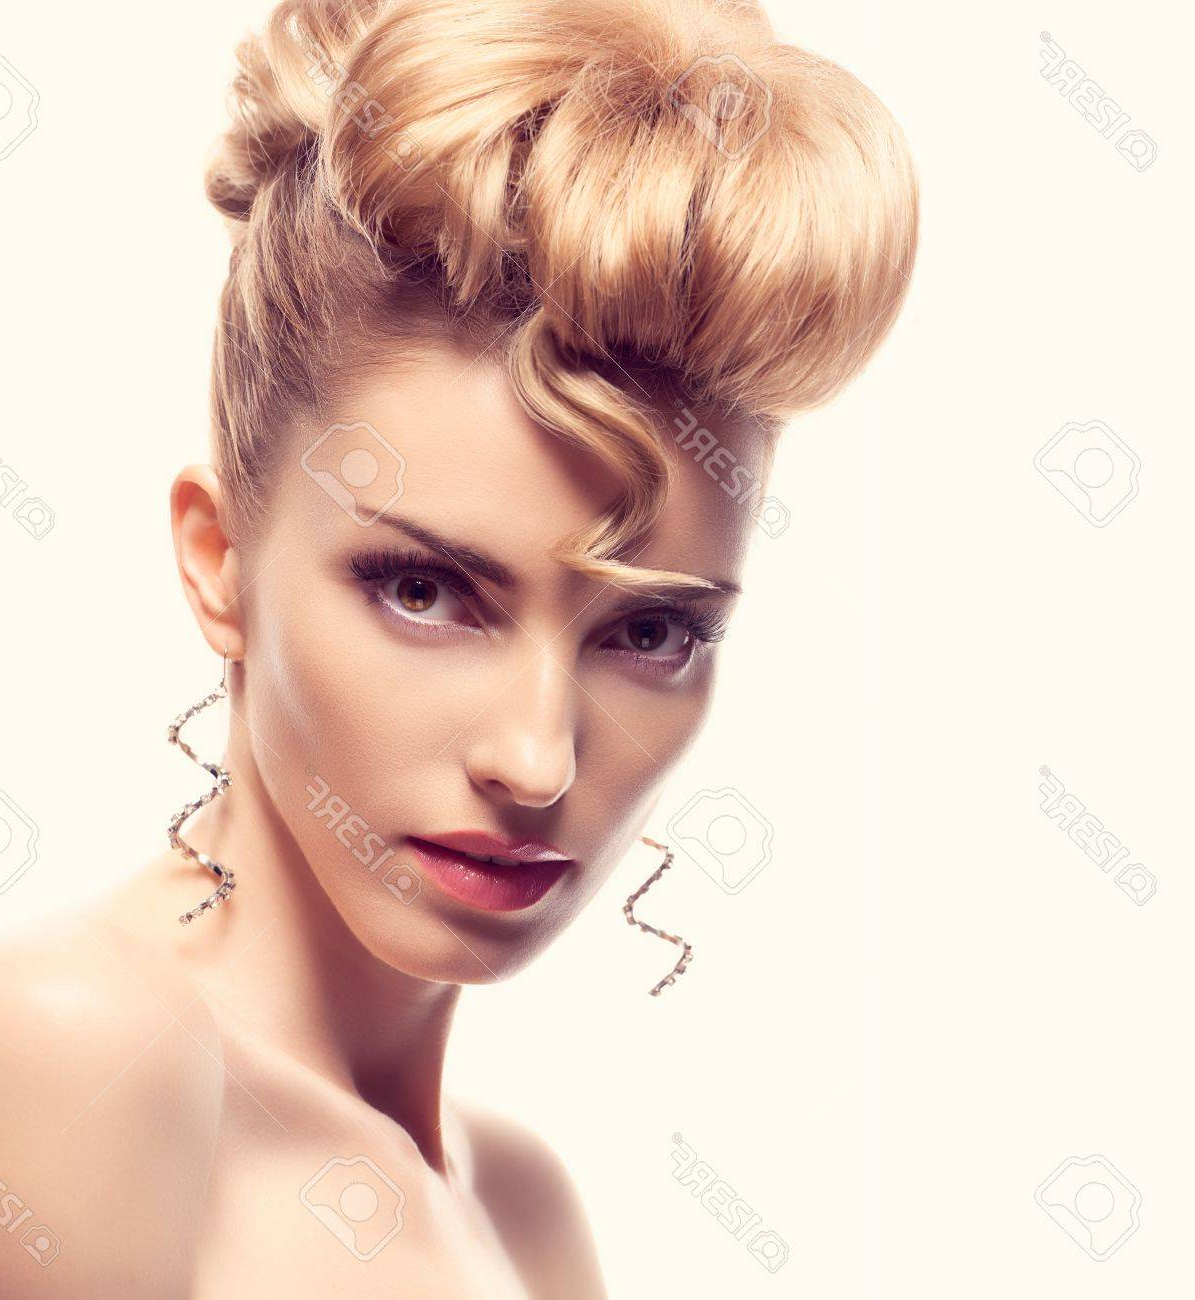 Widely Used Blonde Mohawk Hairstyles Intended For Fashion Natural Makeup. Beauty Woman With Mohawk Hairstyle (View 19 of 20)